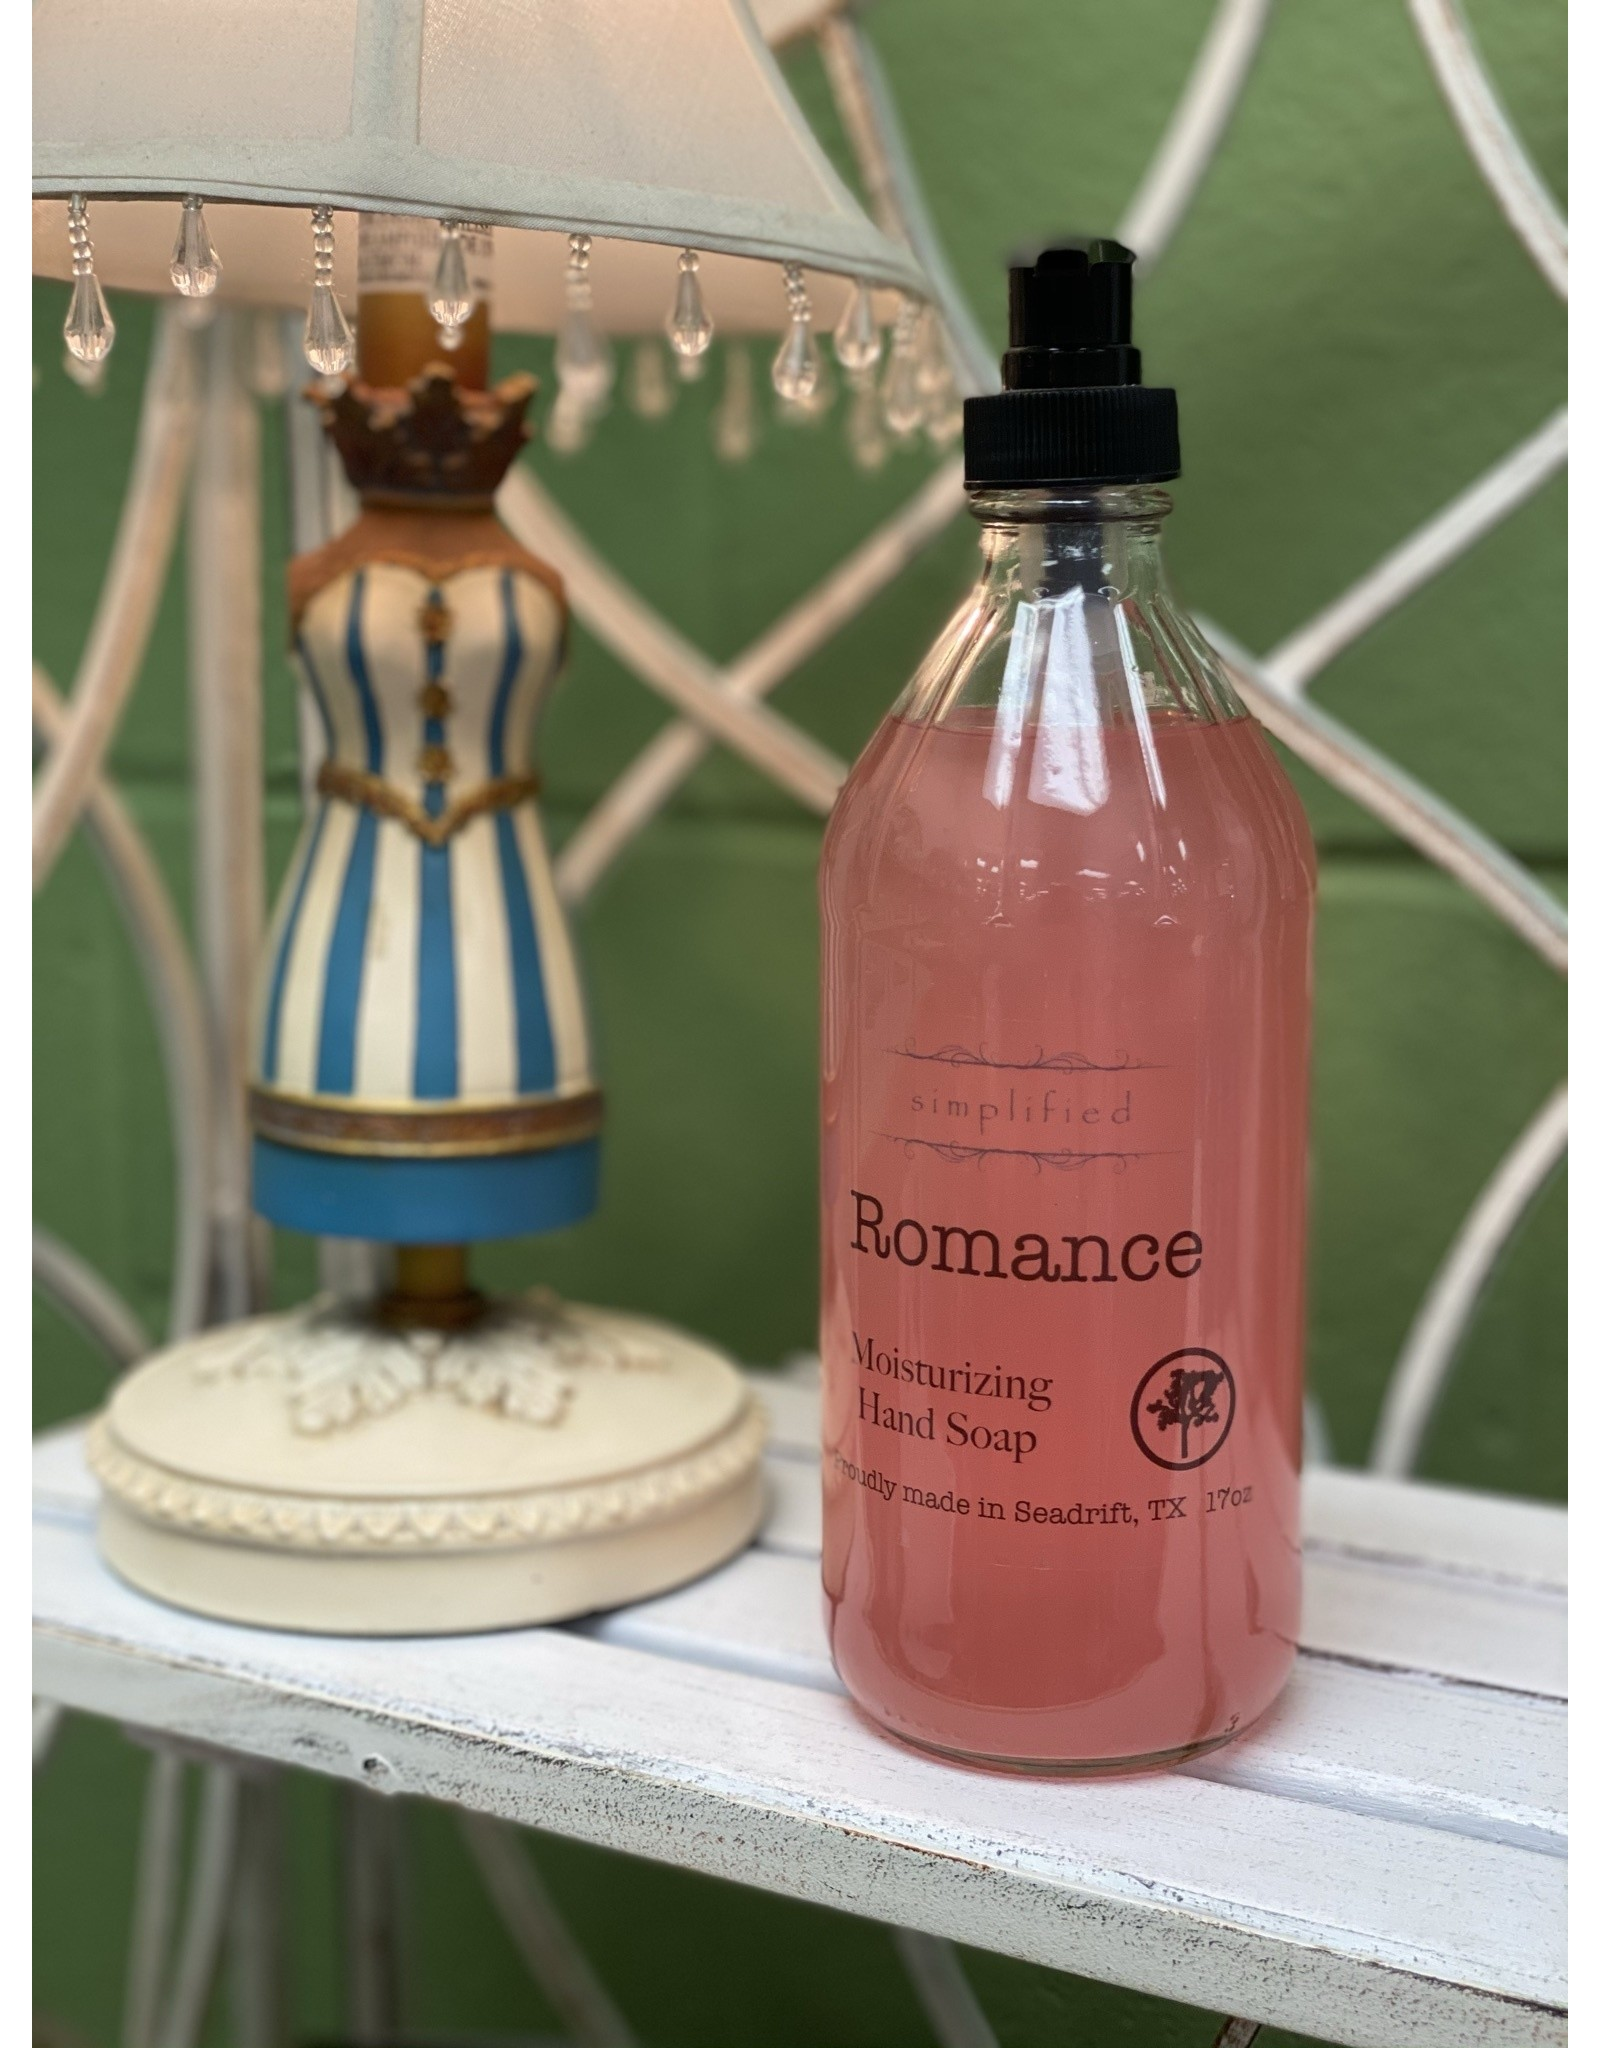 Romance Moisturizing Hand Soap 17oz